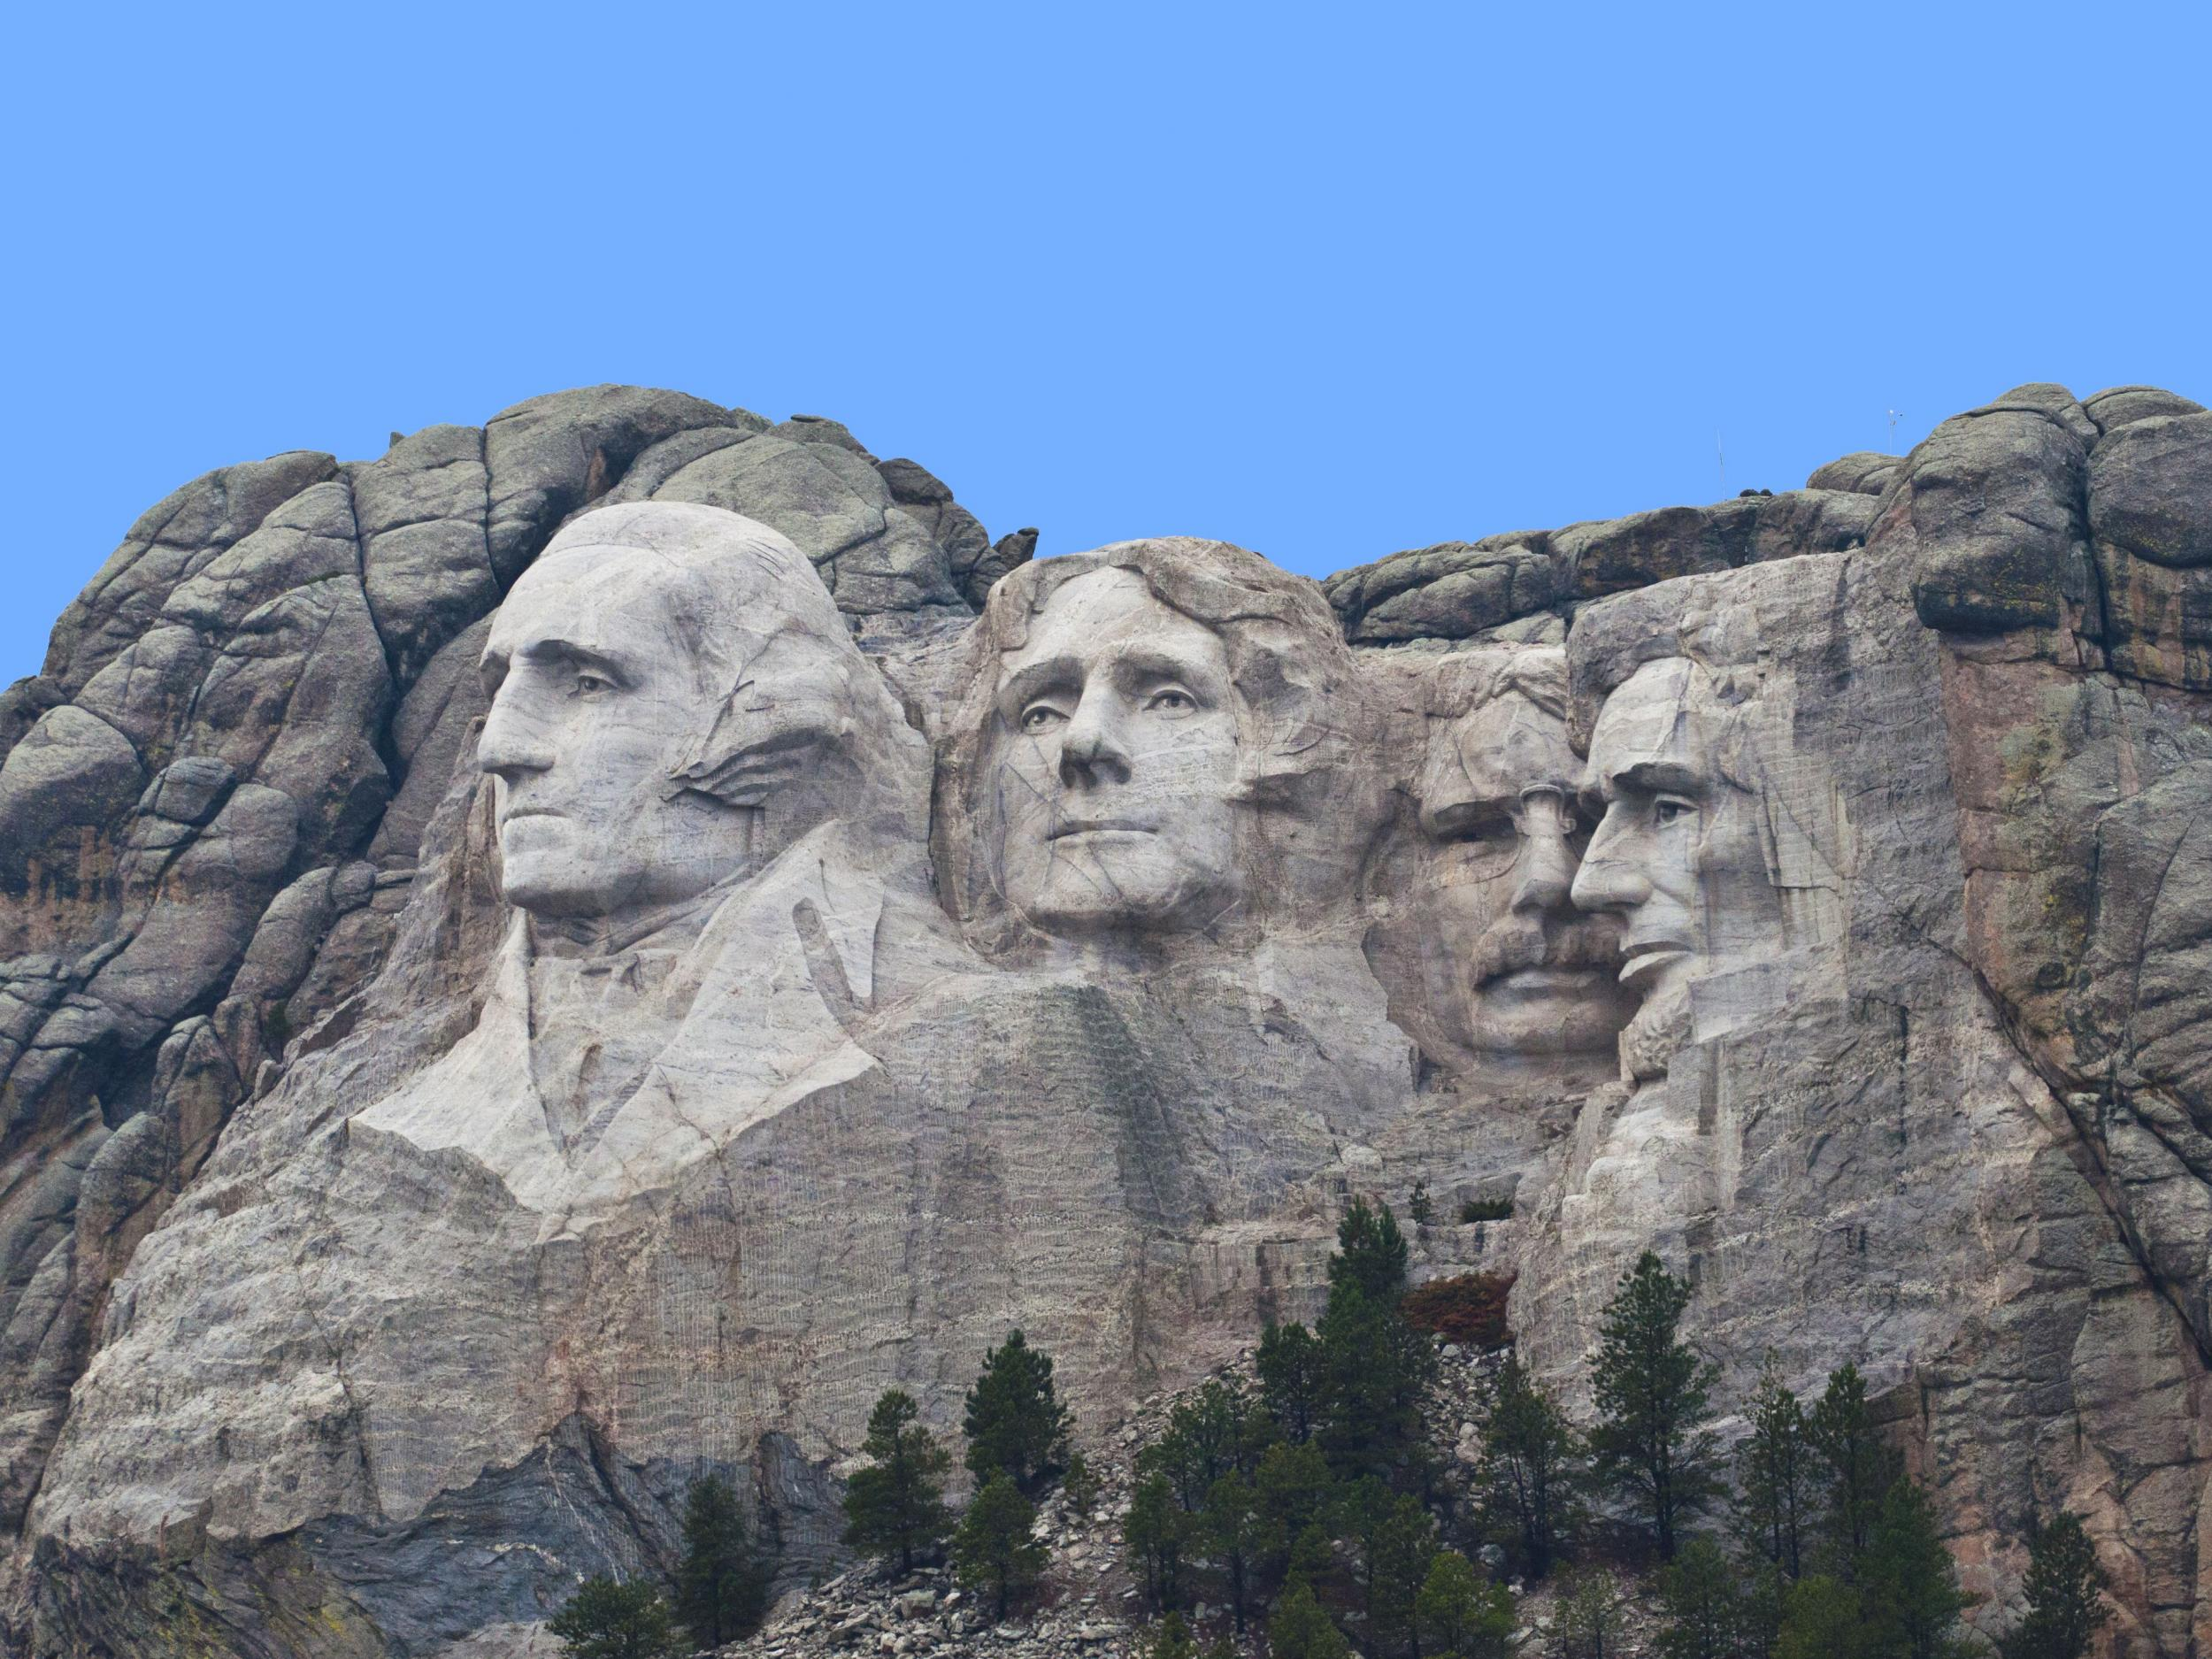 1. Under Cover Mount Rushmore (Keystone